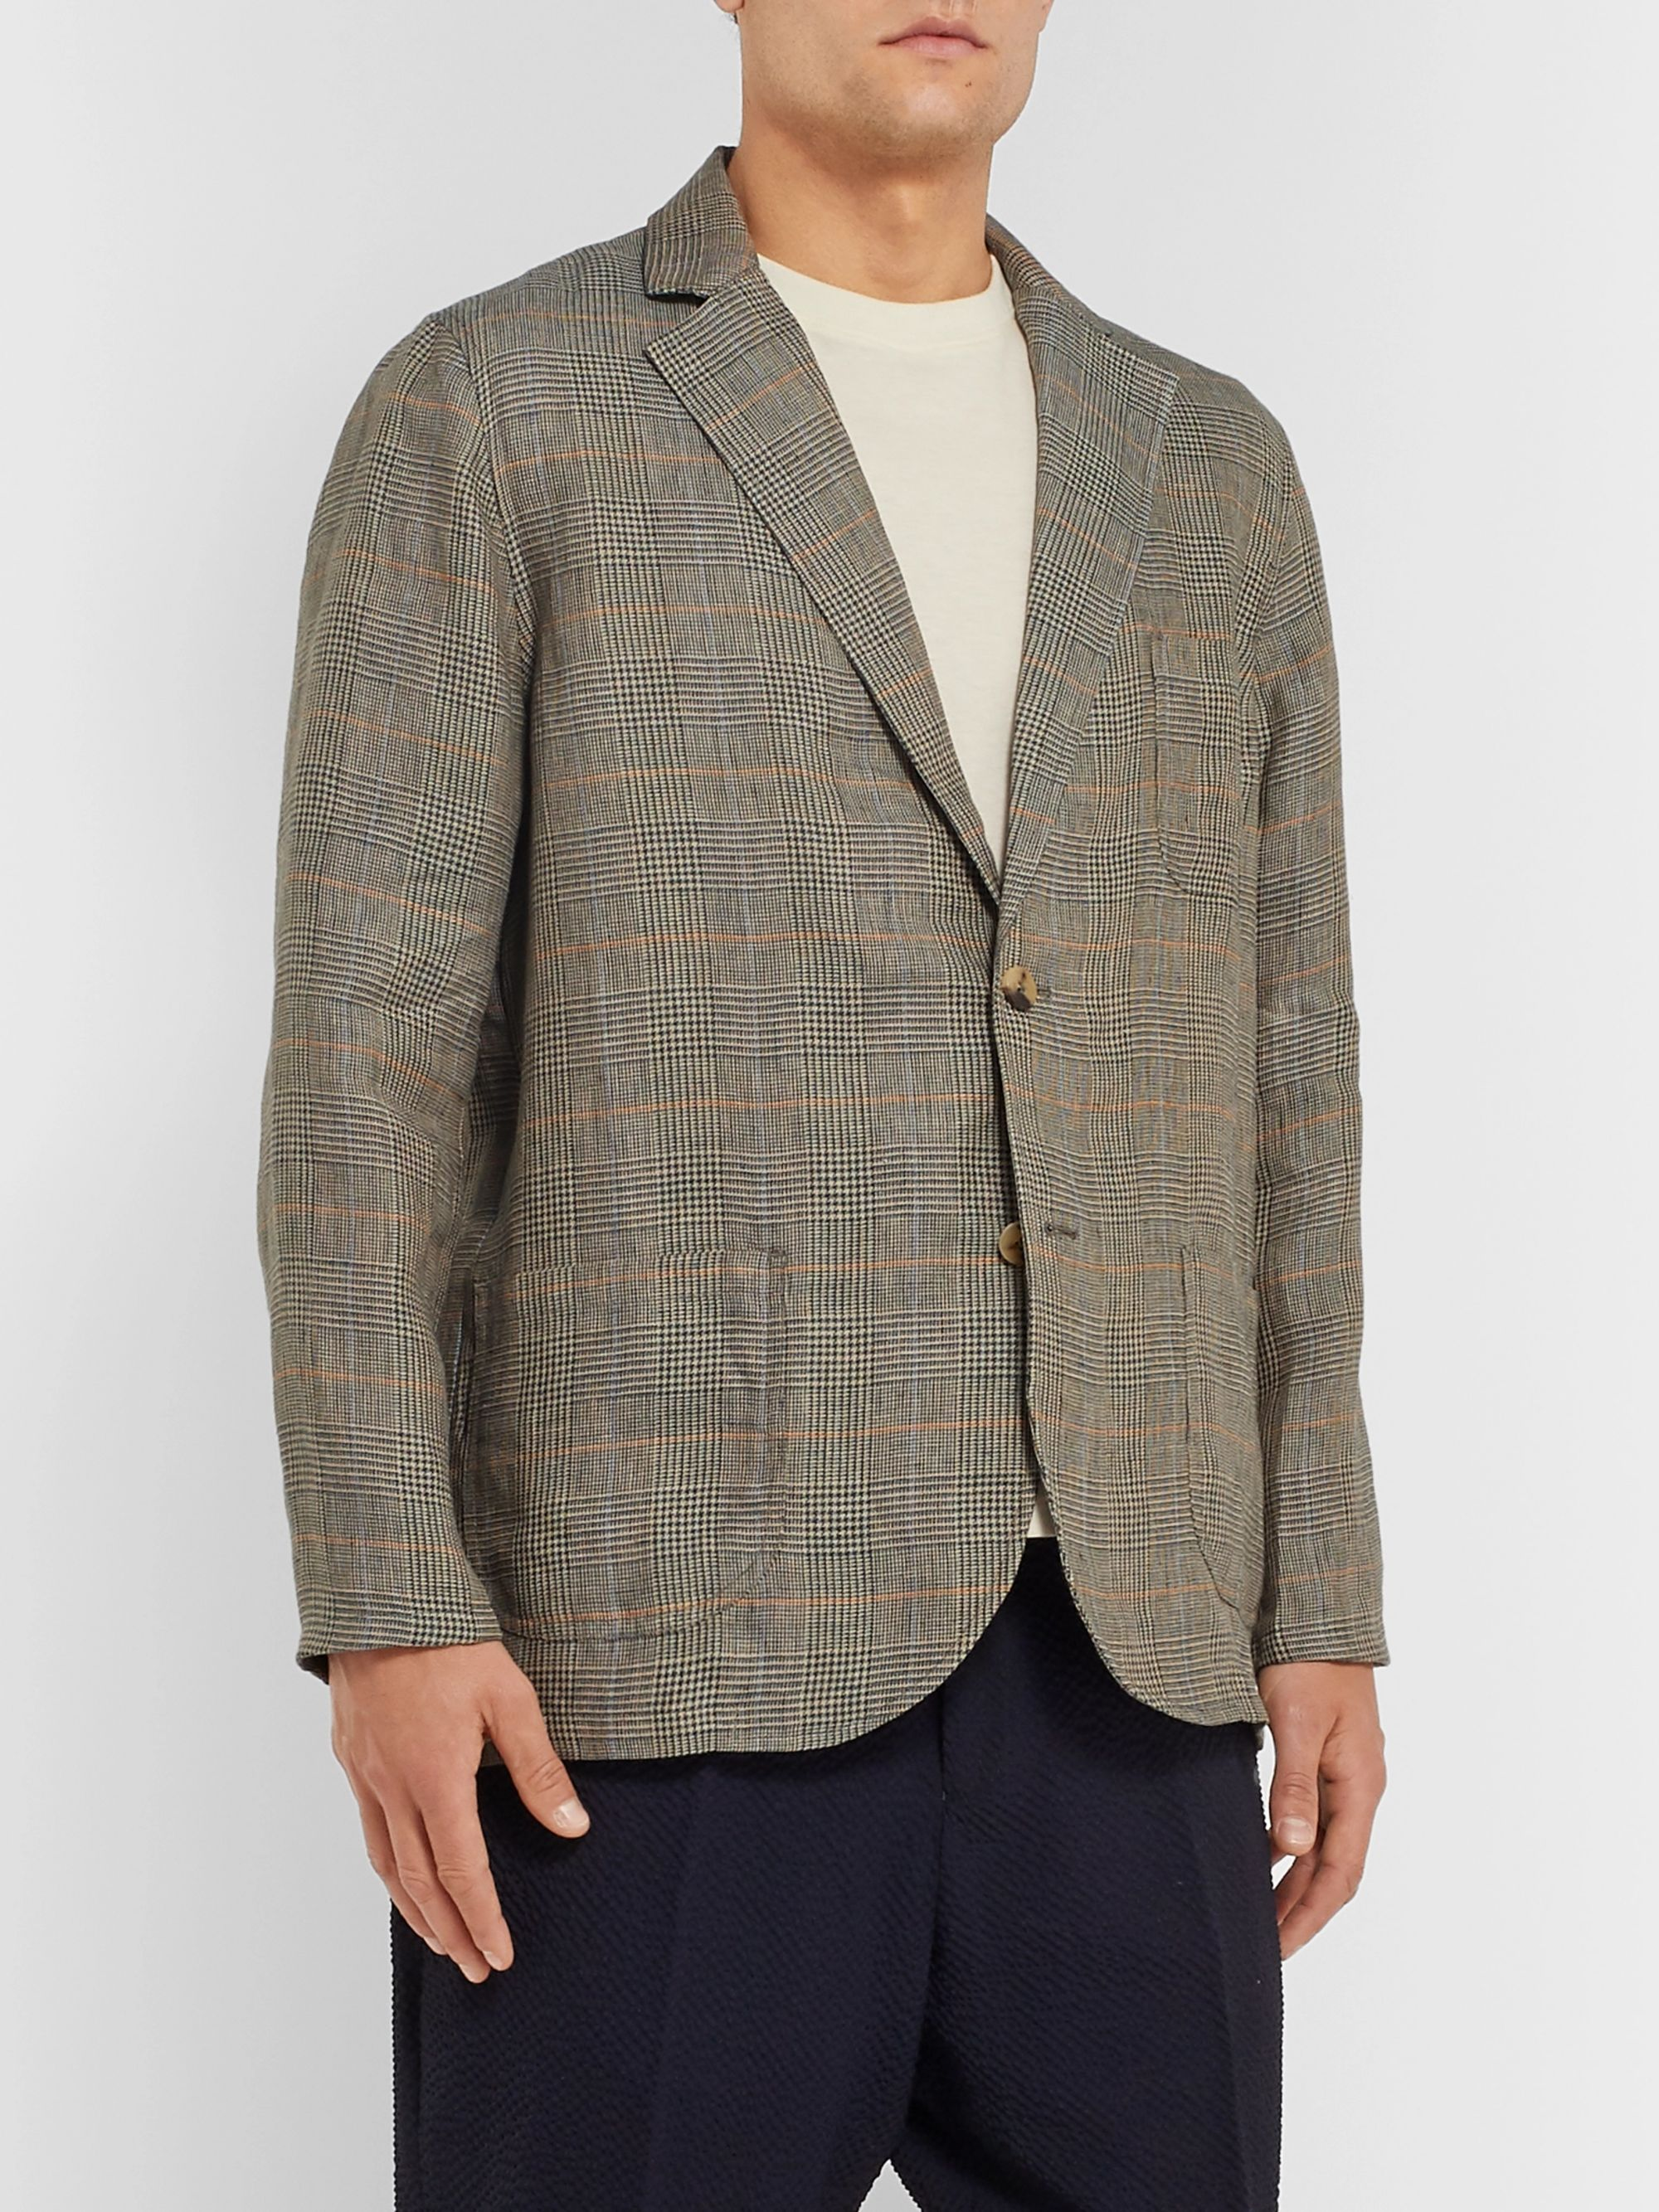 De Bonne Facture Unstructured Prince of Wales Checked Washed-Linen Blazer